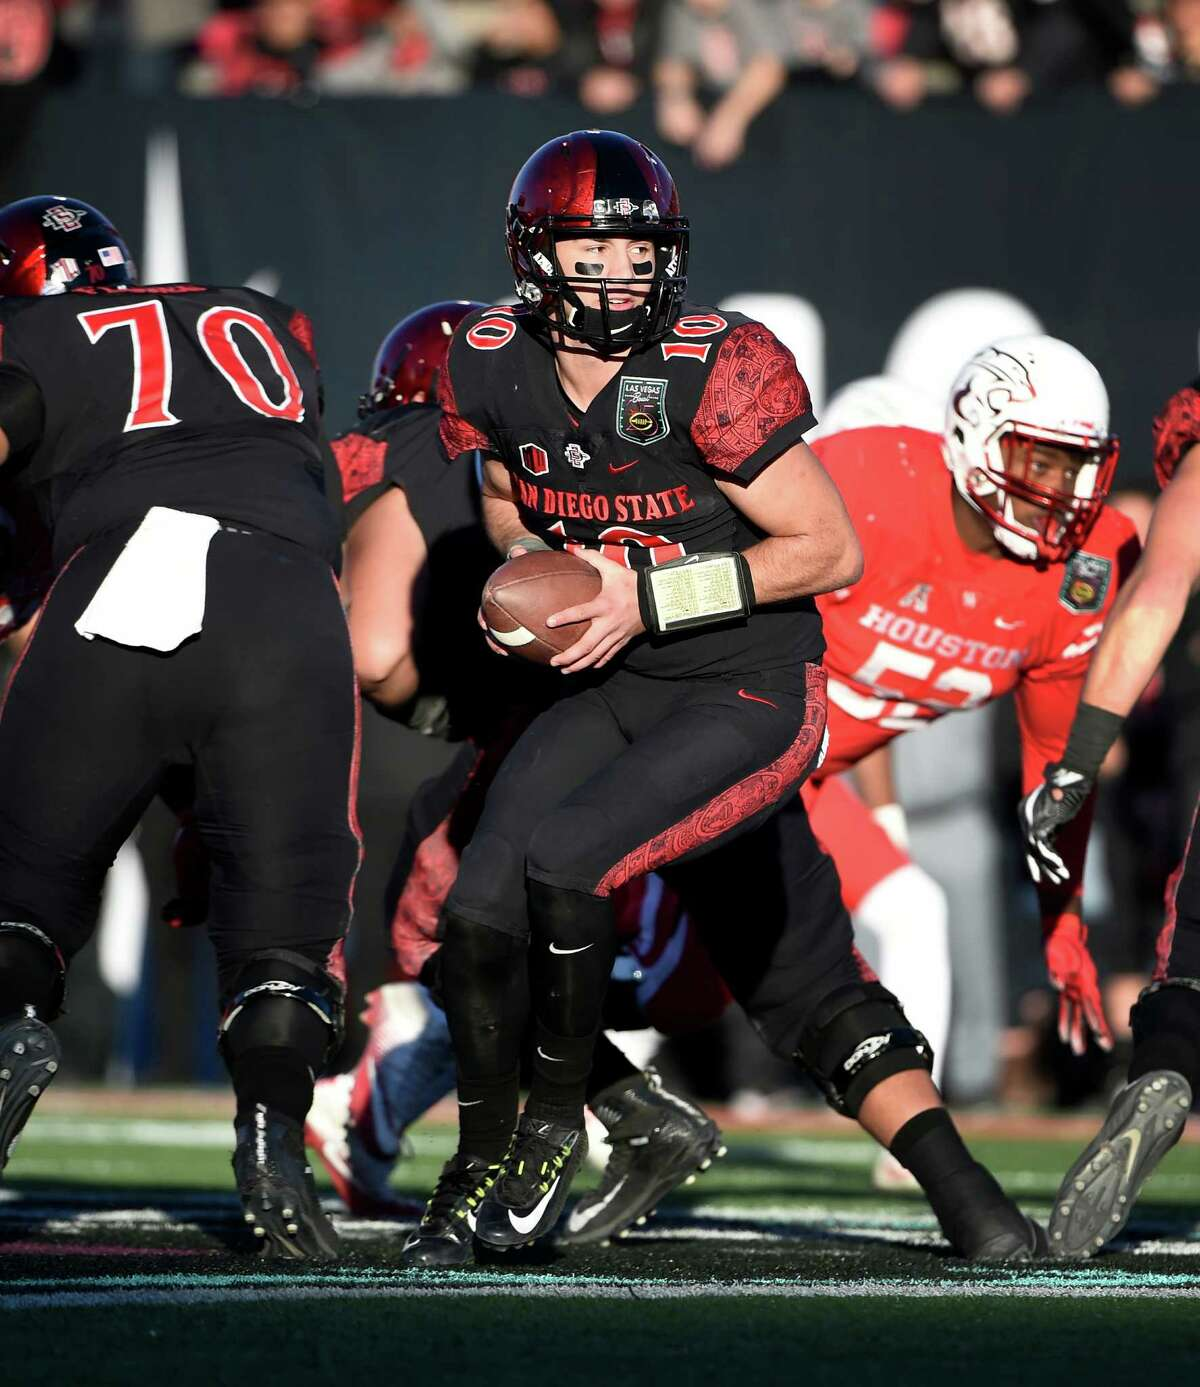 San Diego State quarterback Christian Chapman (10) looks to hand off the ball against Houston during the second half of the Las Vegas Bowl NCAA college football game on Saturday, Dec. 17, 2016, in Las Vegas. San Diego State won 34-10. (AP Photo/David Becker)